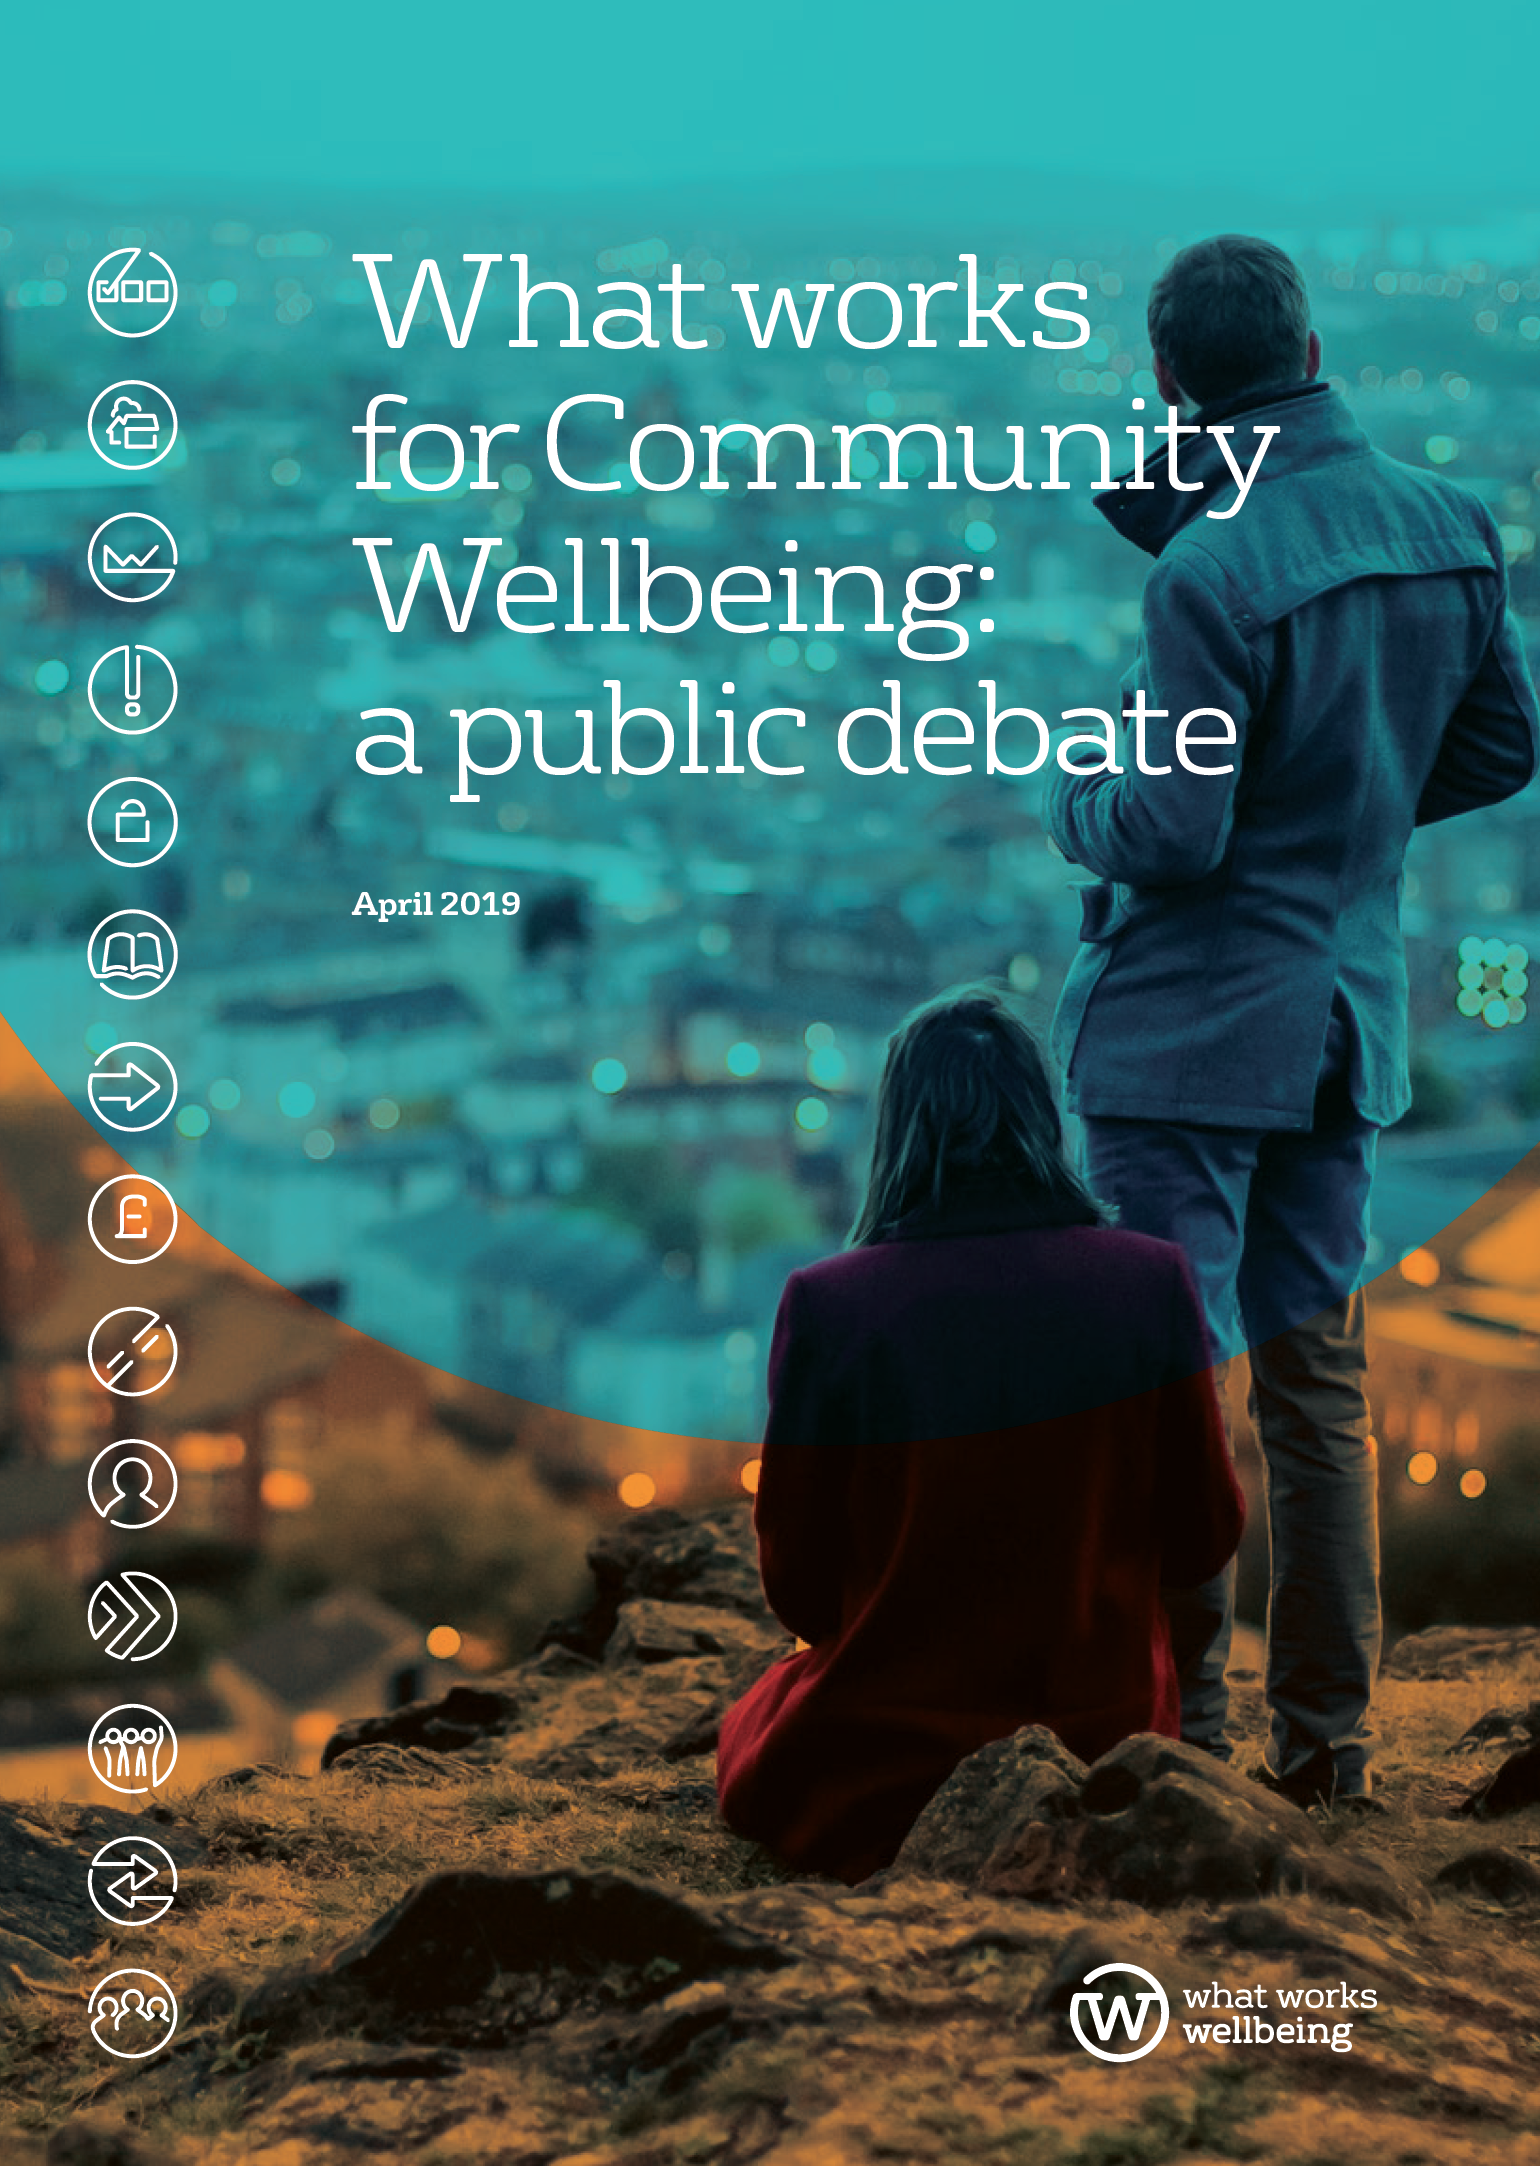 What works for community wellbeing: a public debate